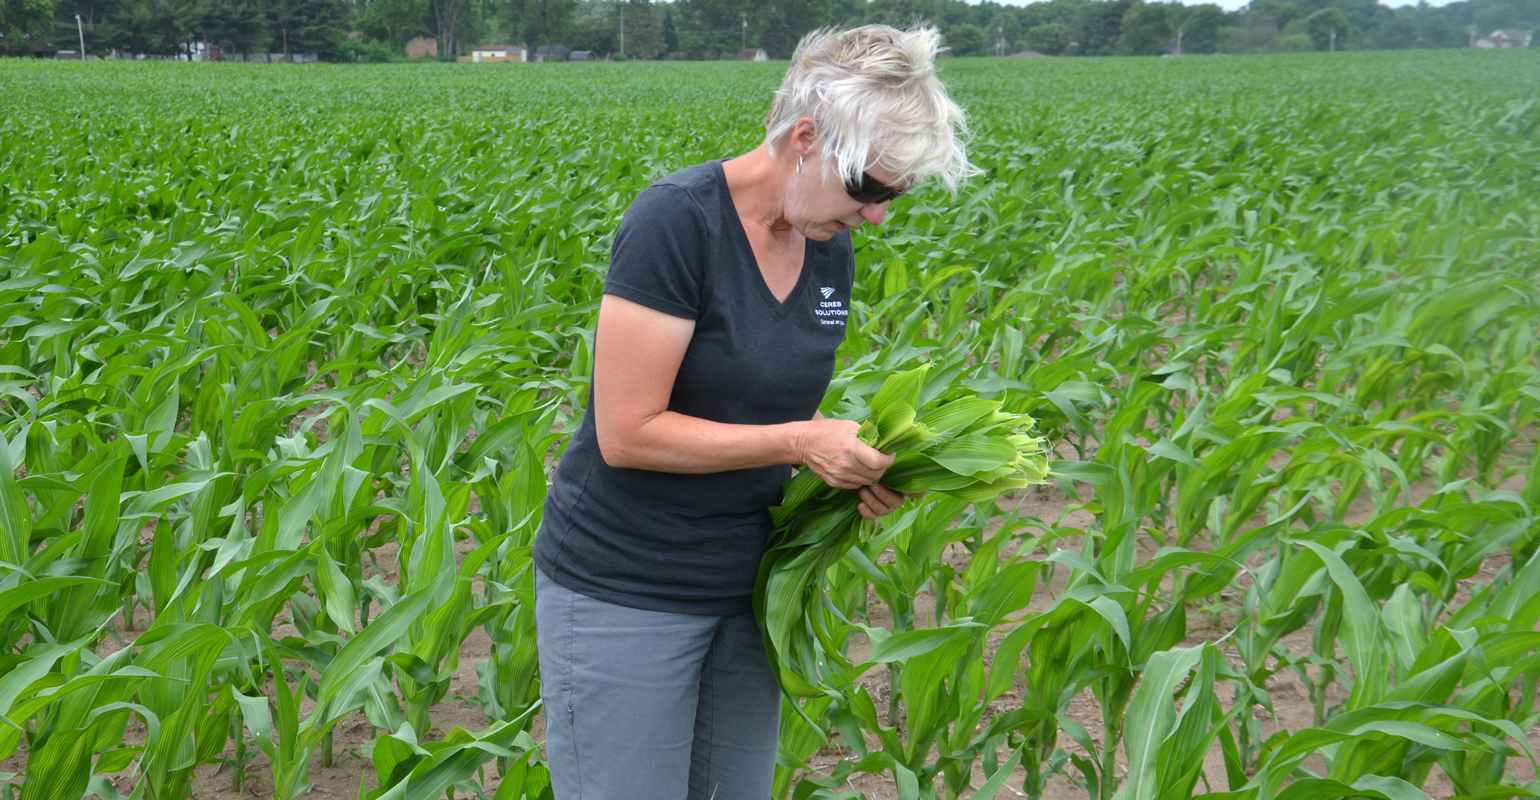 Betsy Bower collects leaves from a cornfield showing striping and lighter color